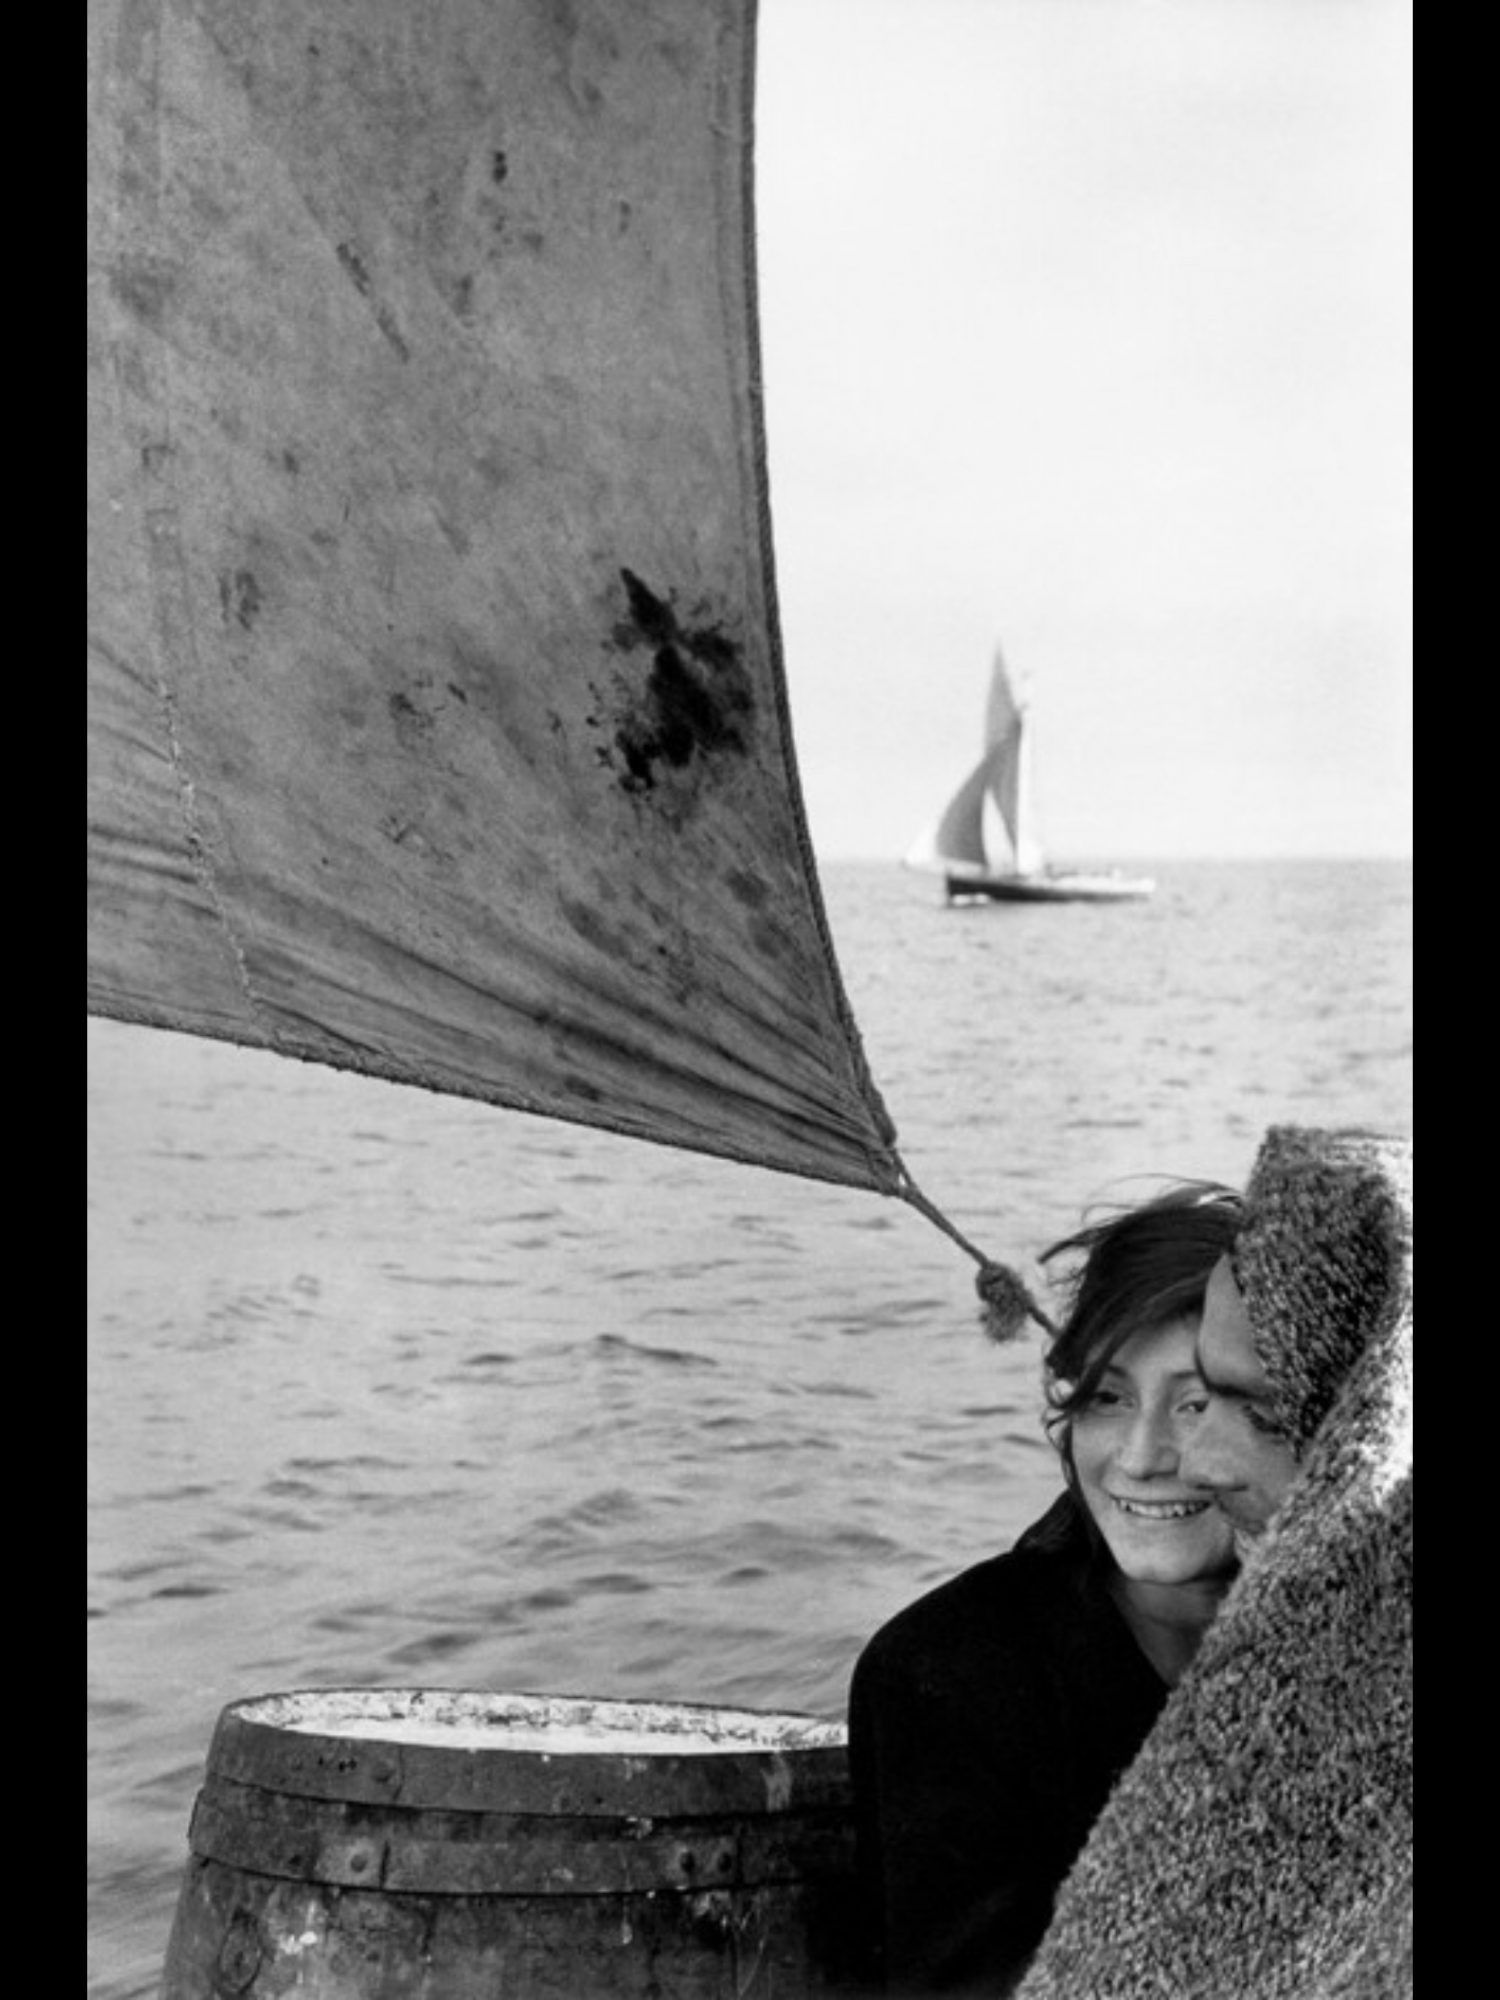 Sailboat at sea, Chile, 1957 by Sergio Larrain